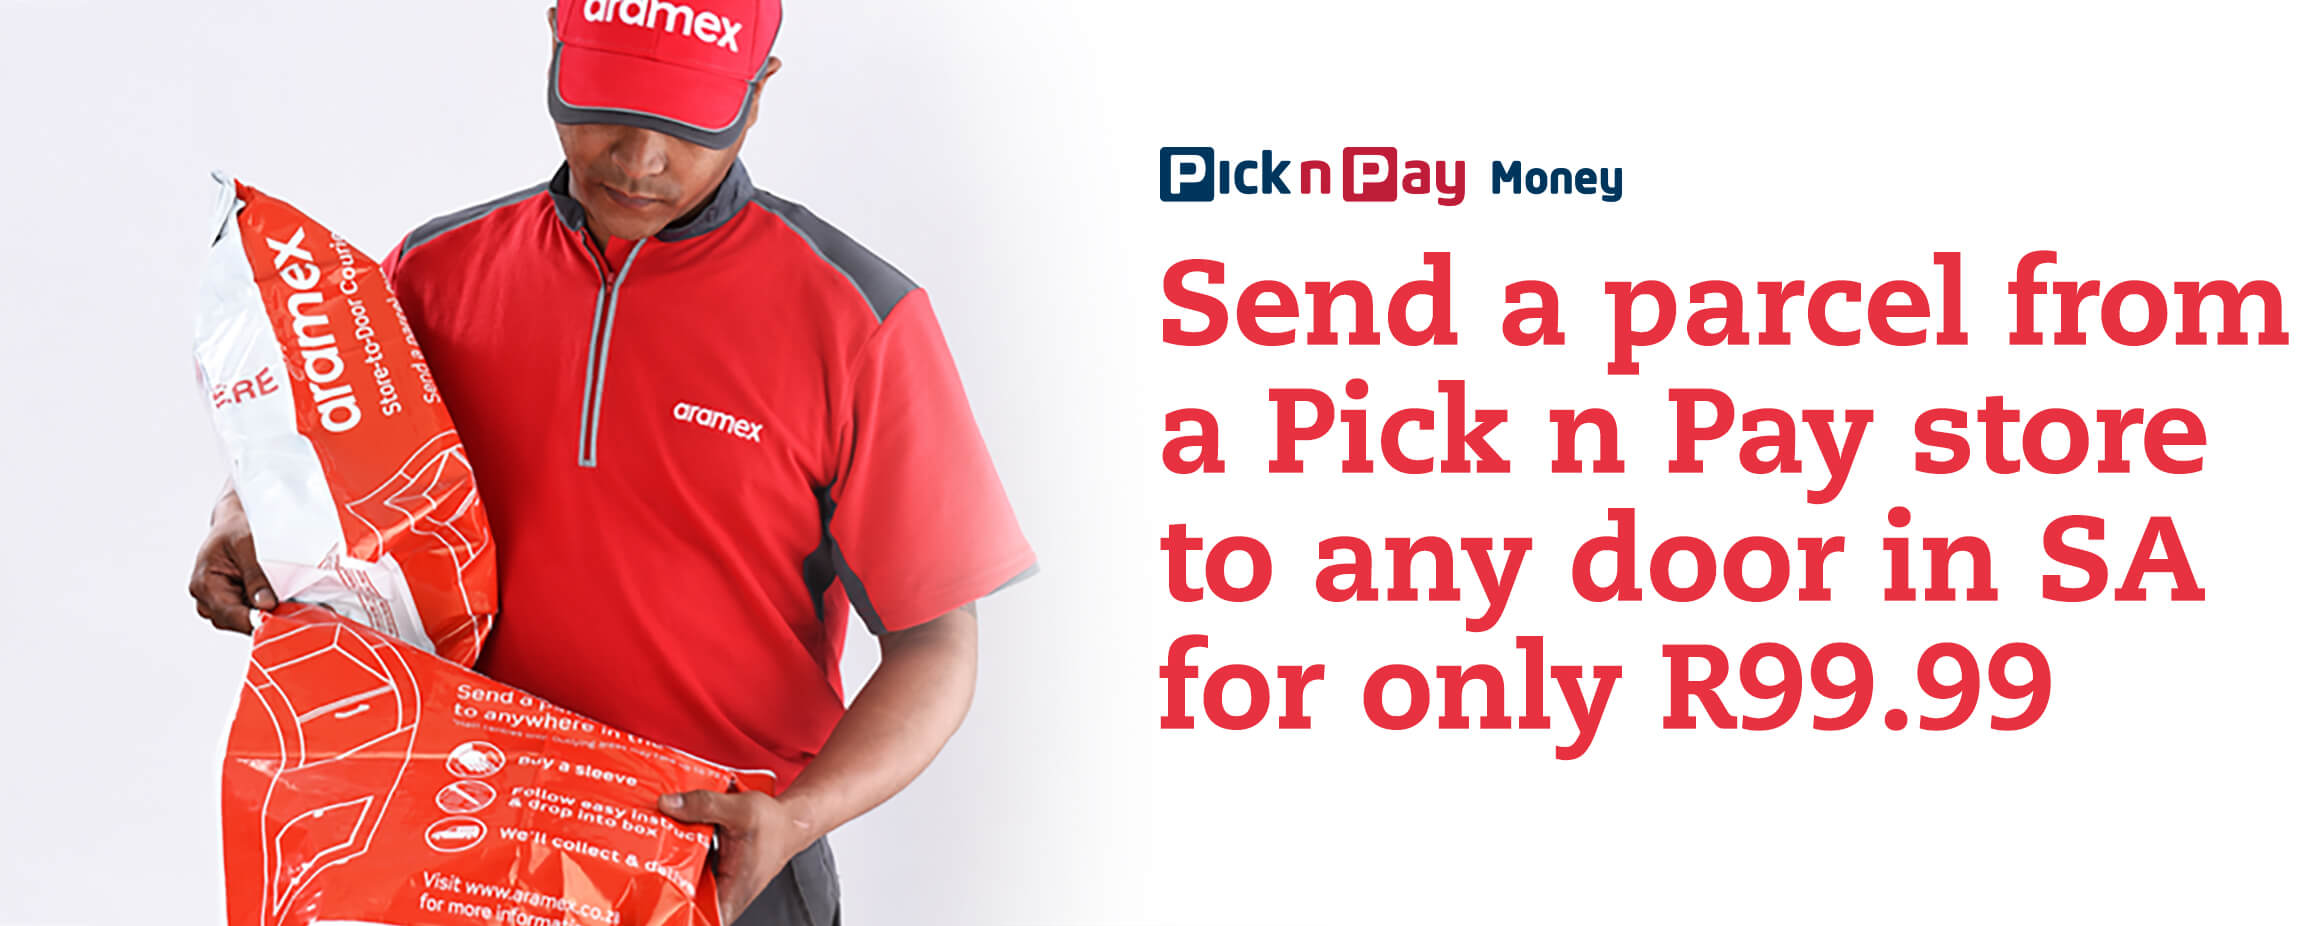 Pick n Pay Courier Service | Pick n Pay Online Shopping